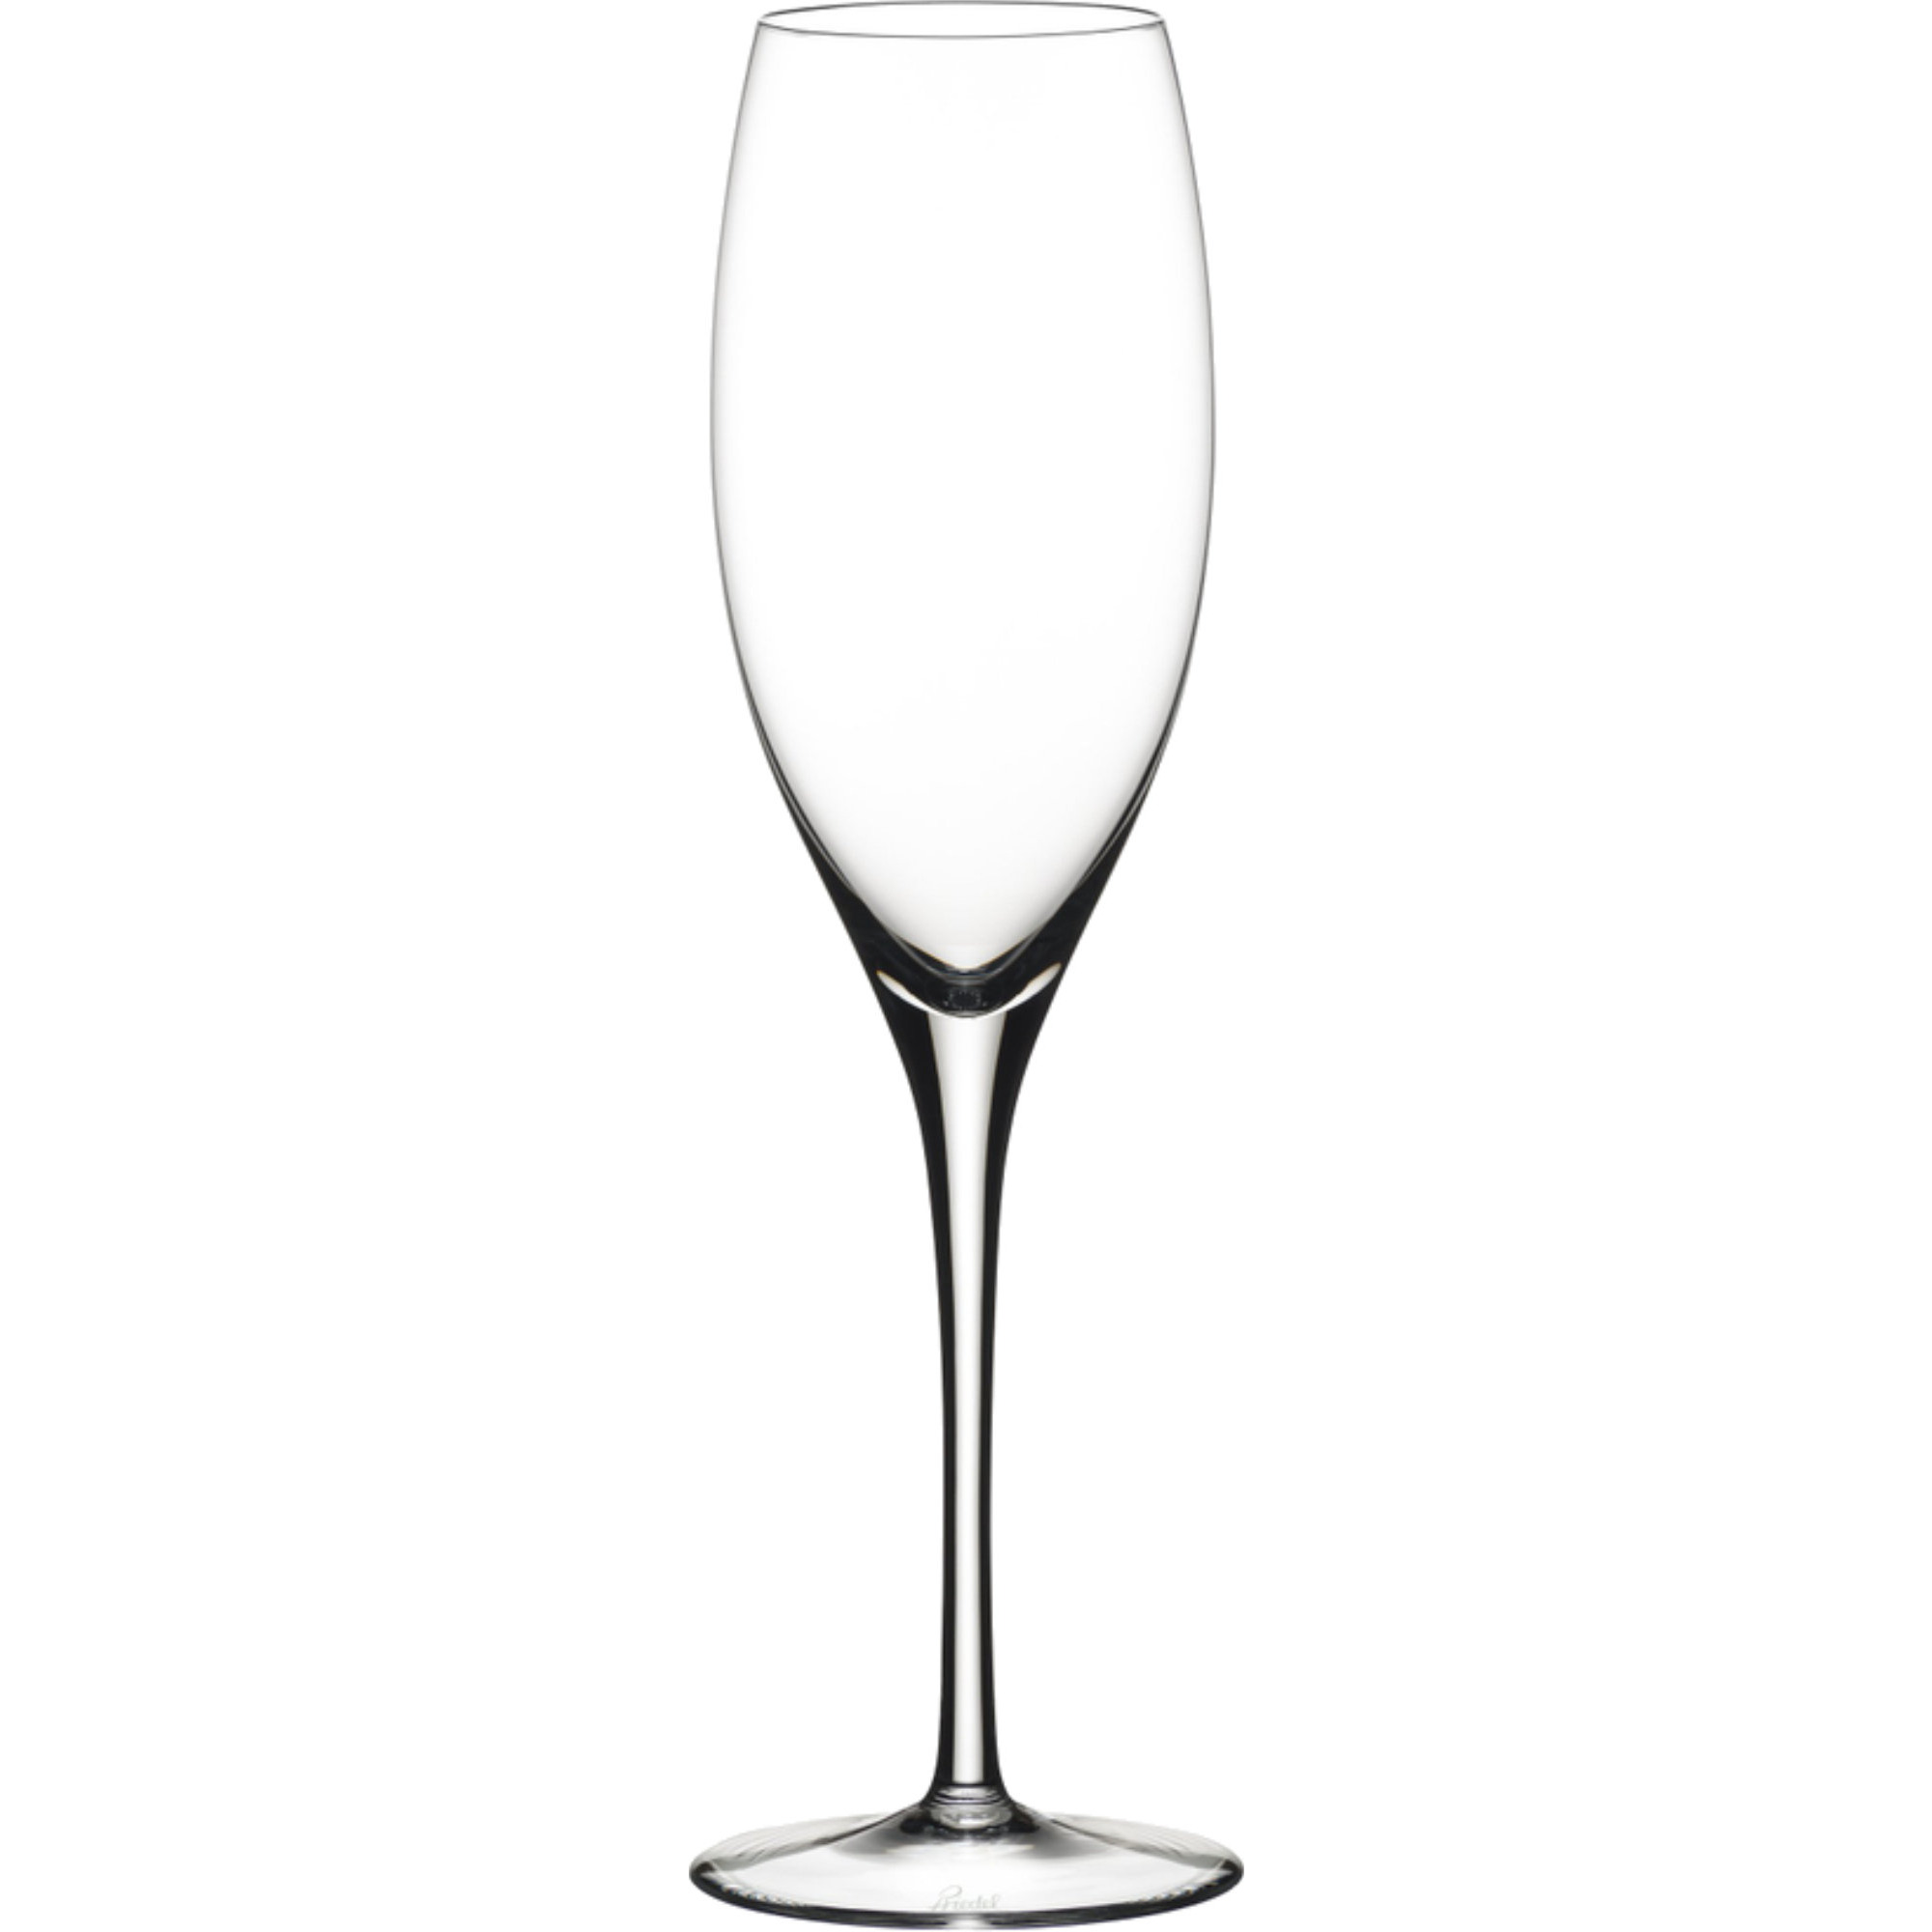 Riedel Sommelier Vintage Champagneglas 33 cl